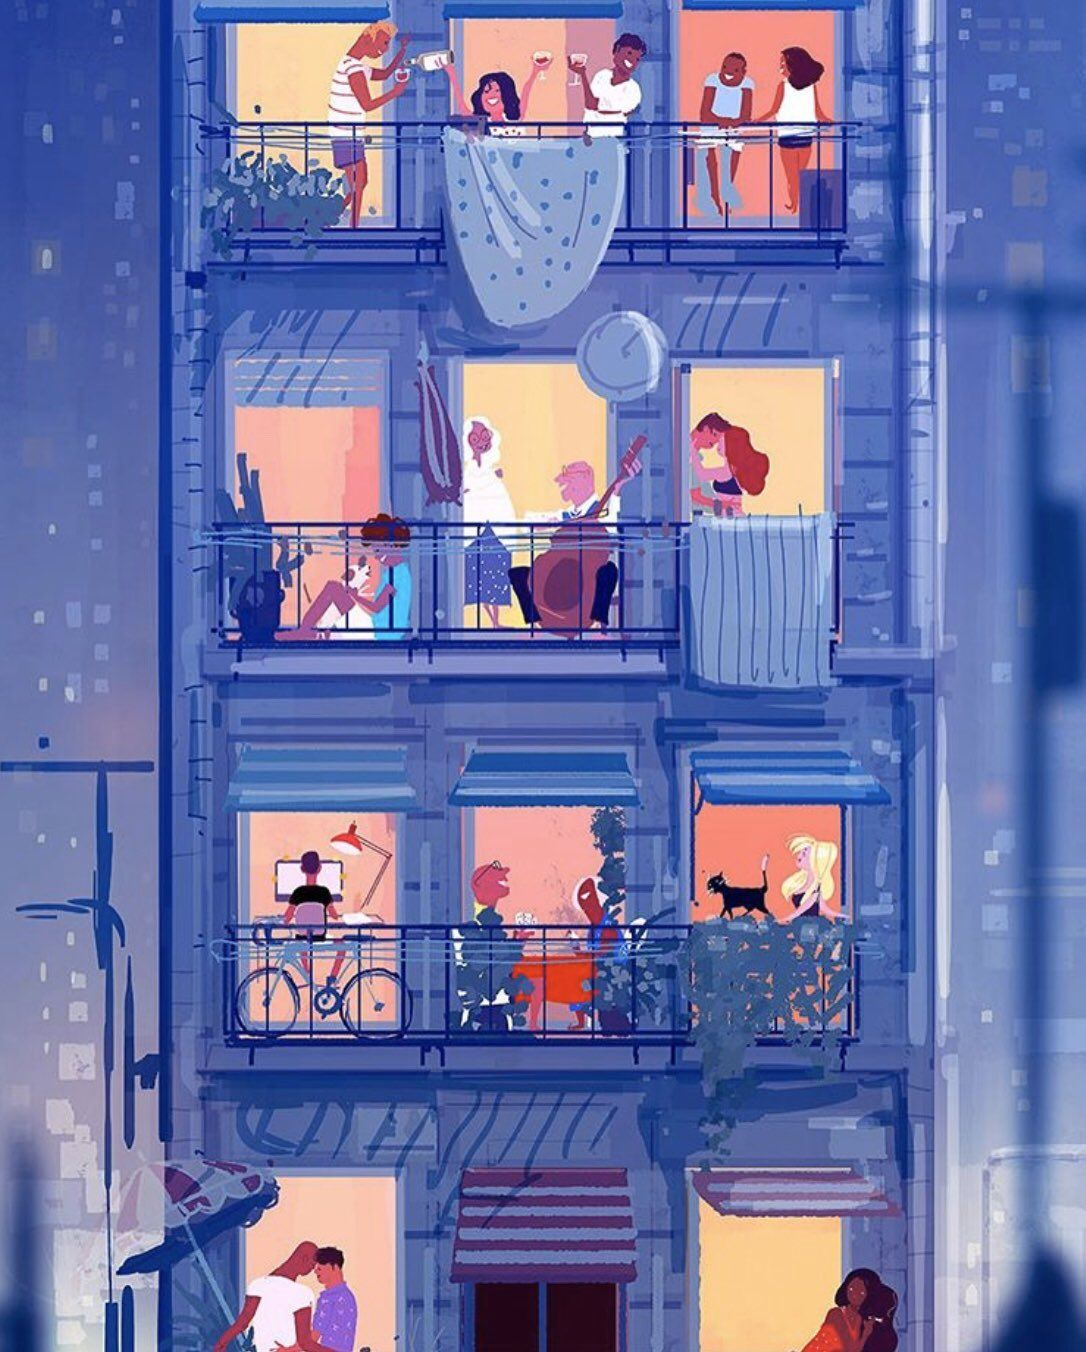 laura franch on Twitter in 2020 | Pascal campion, Illustration, Art